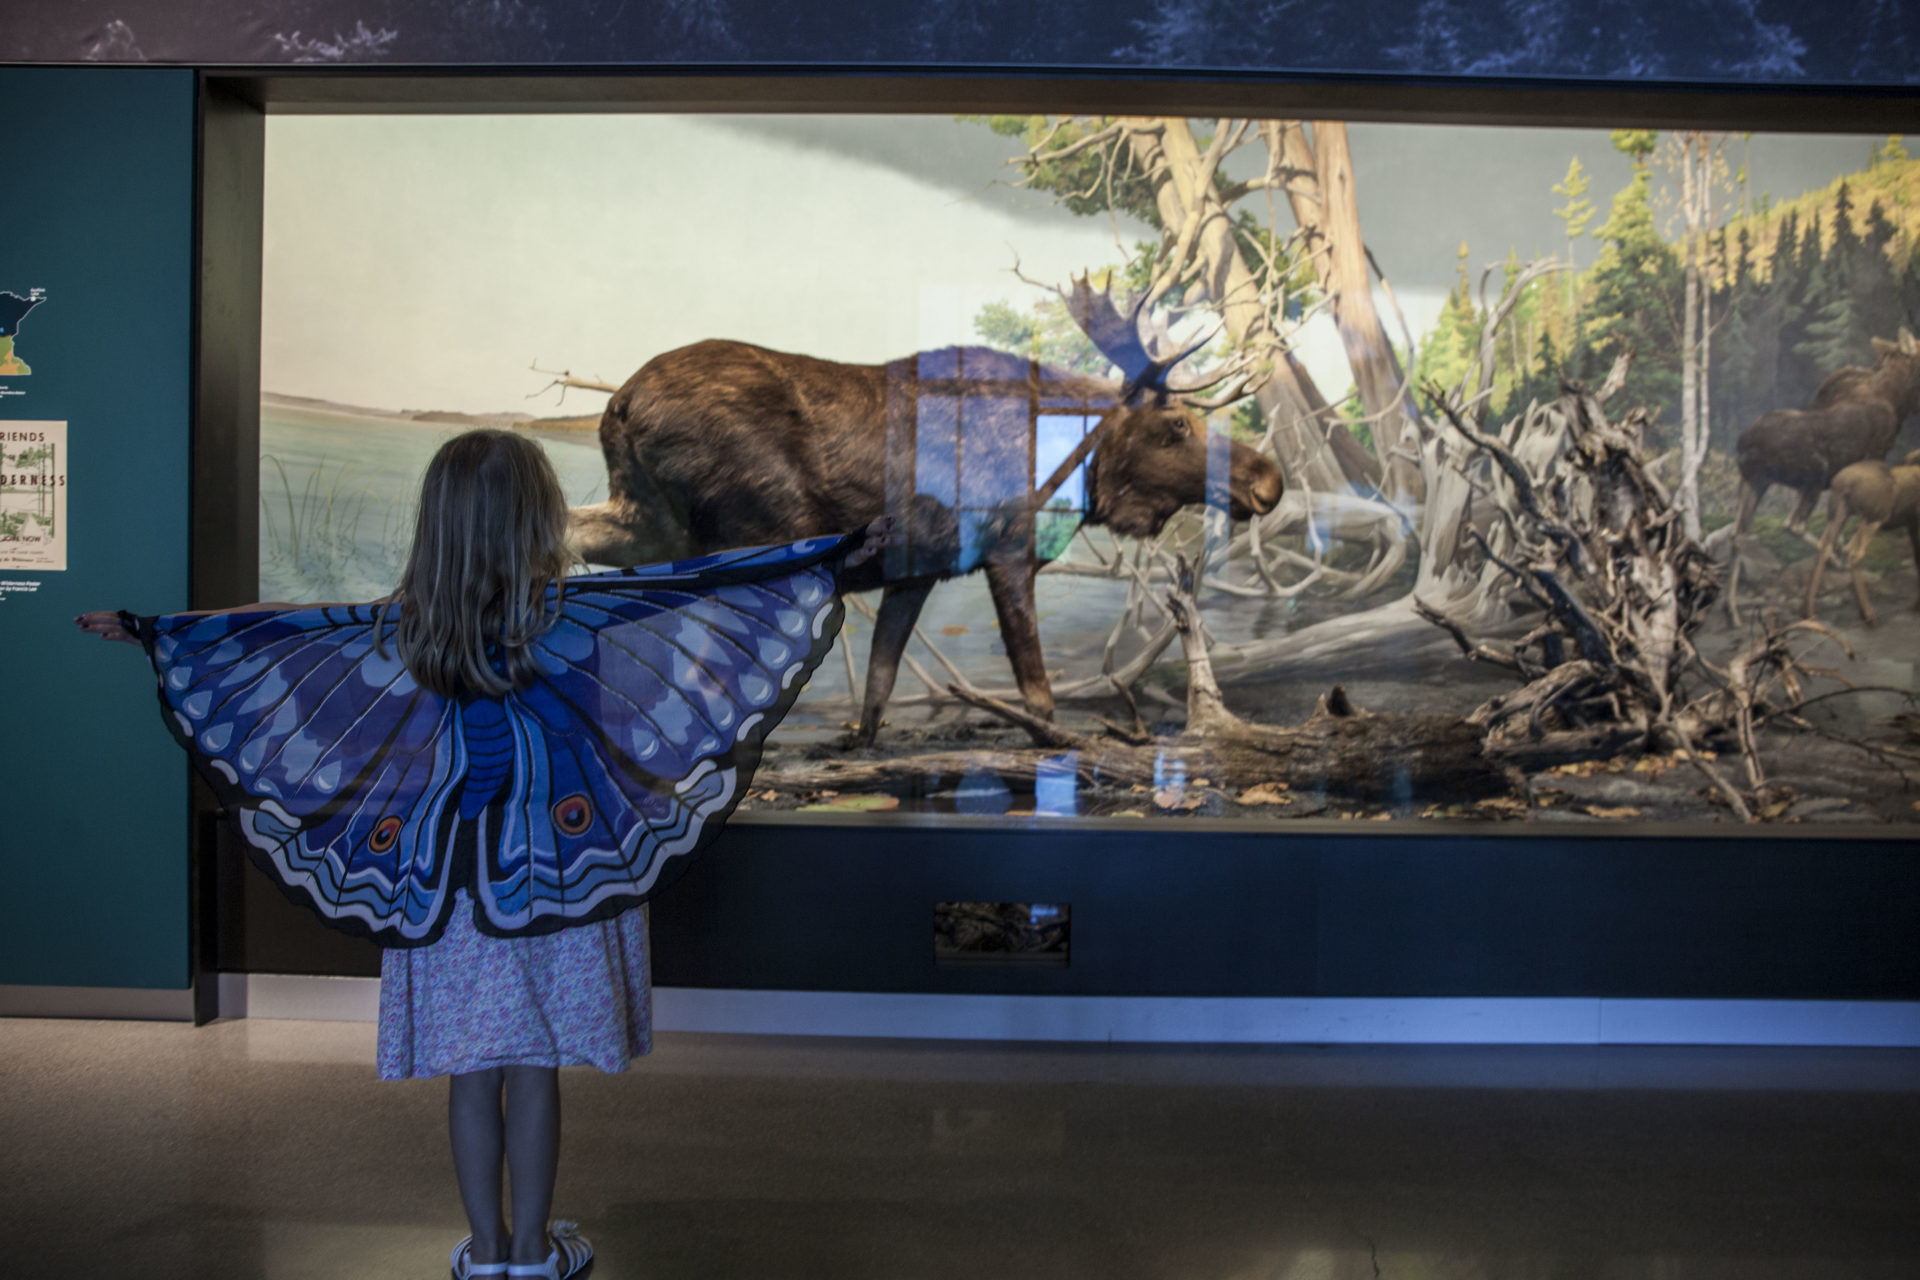 girl wearing butterfly wings looks at wildlife diorama